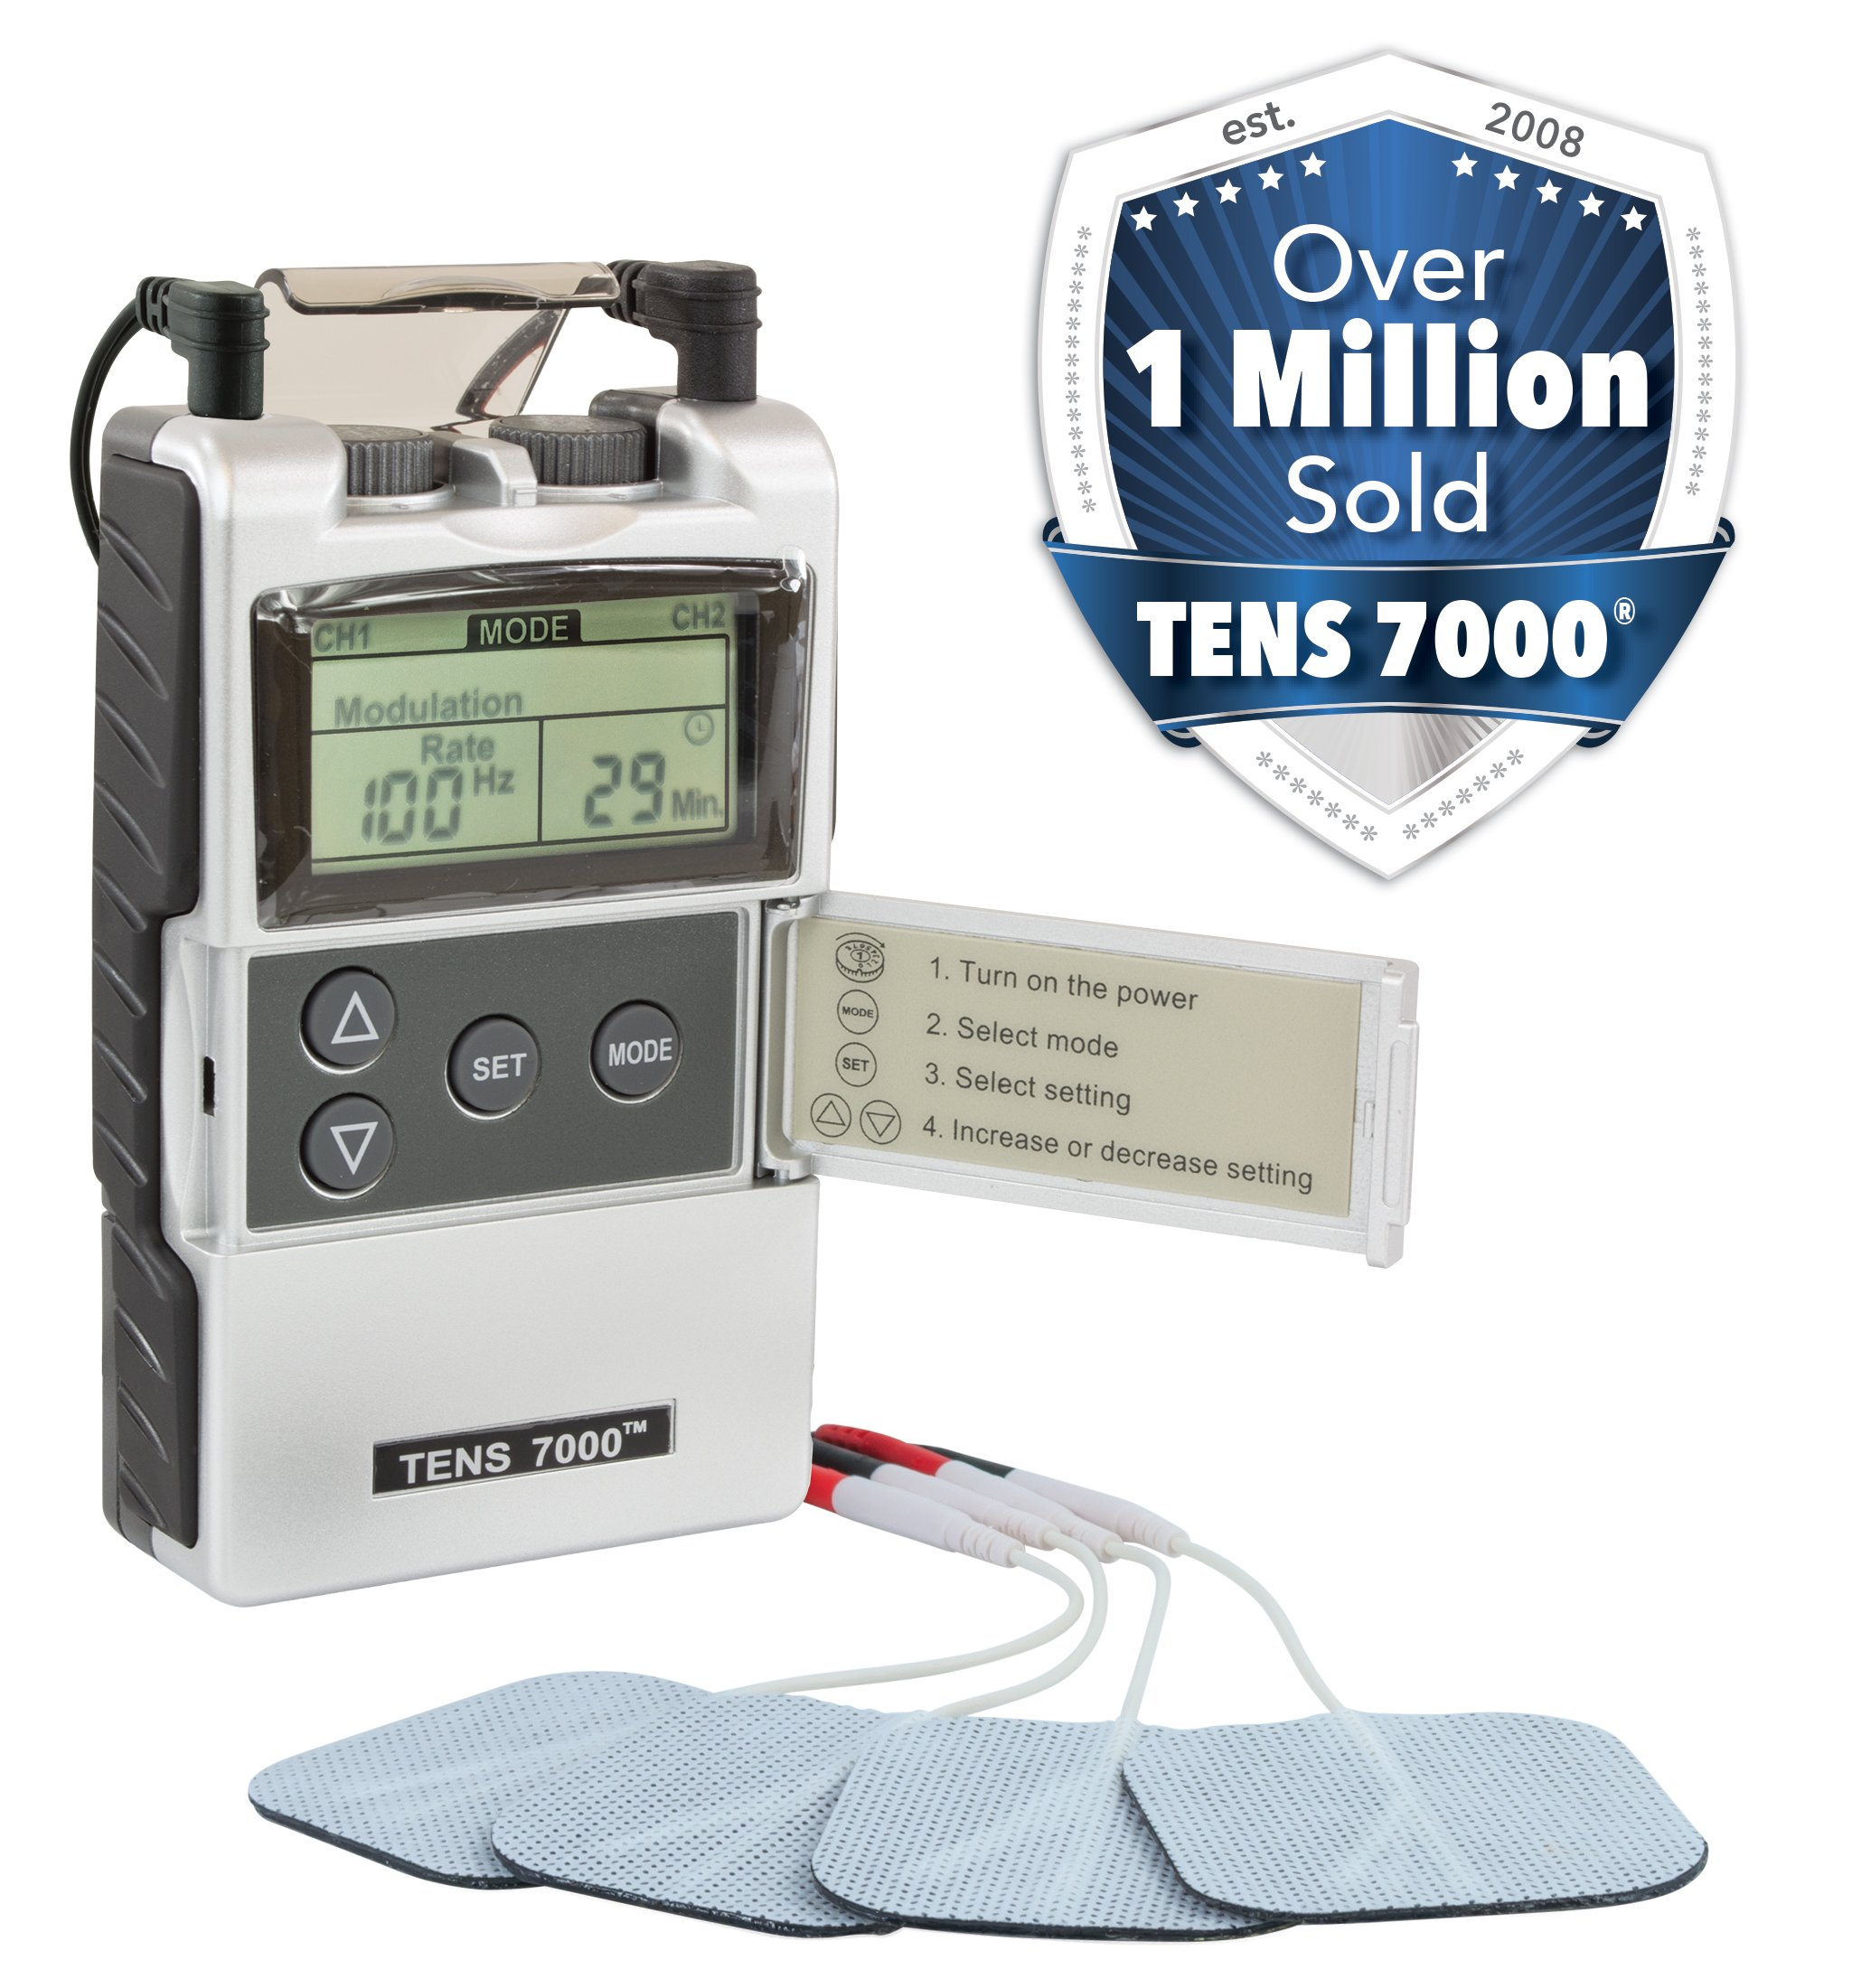 TENS 7000 2nd Edition Digital TENS Unit with Accessories ...